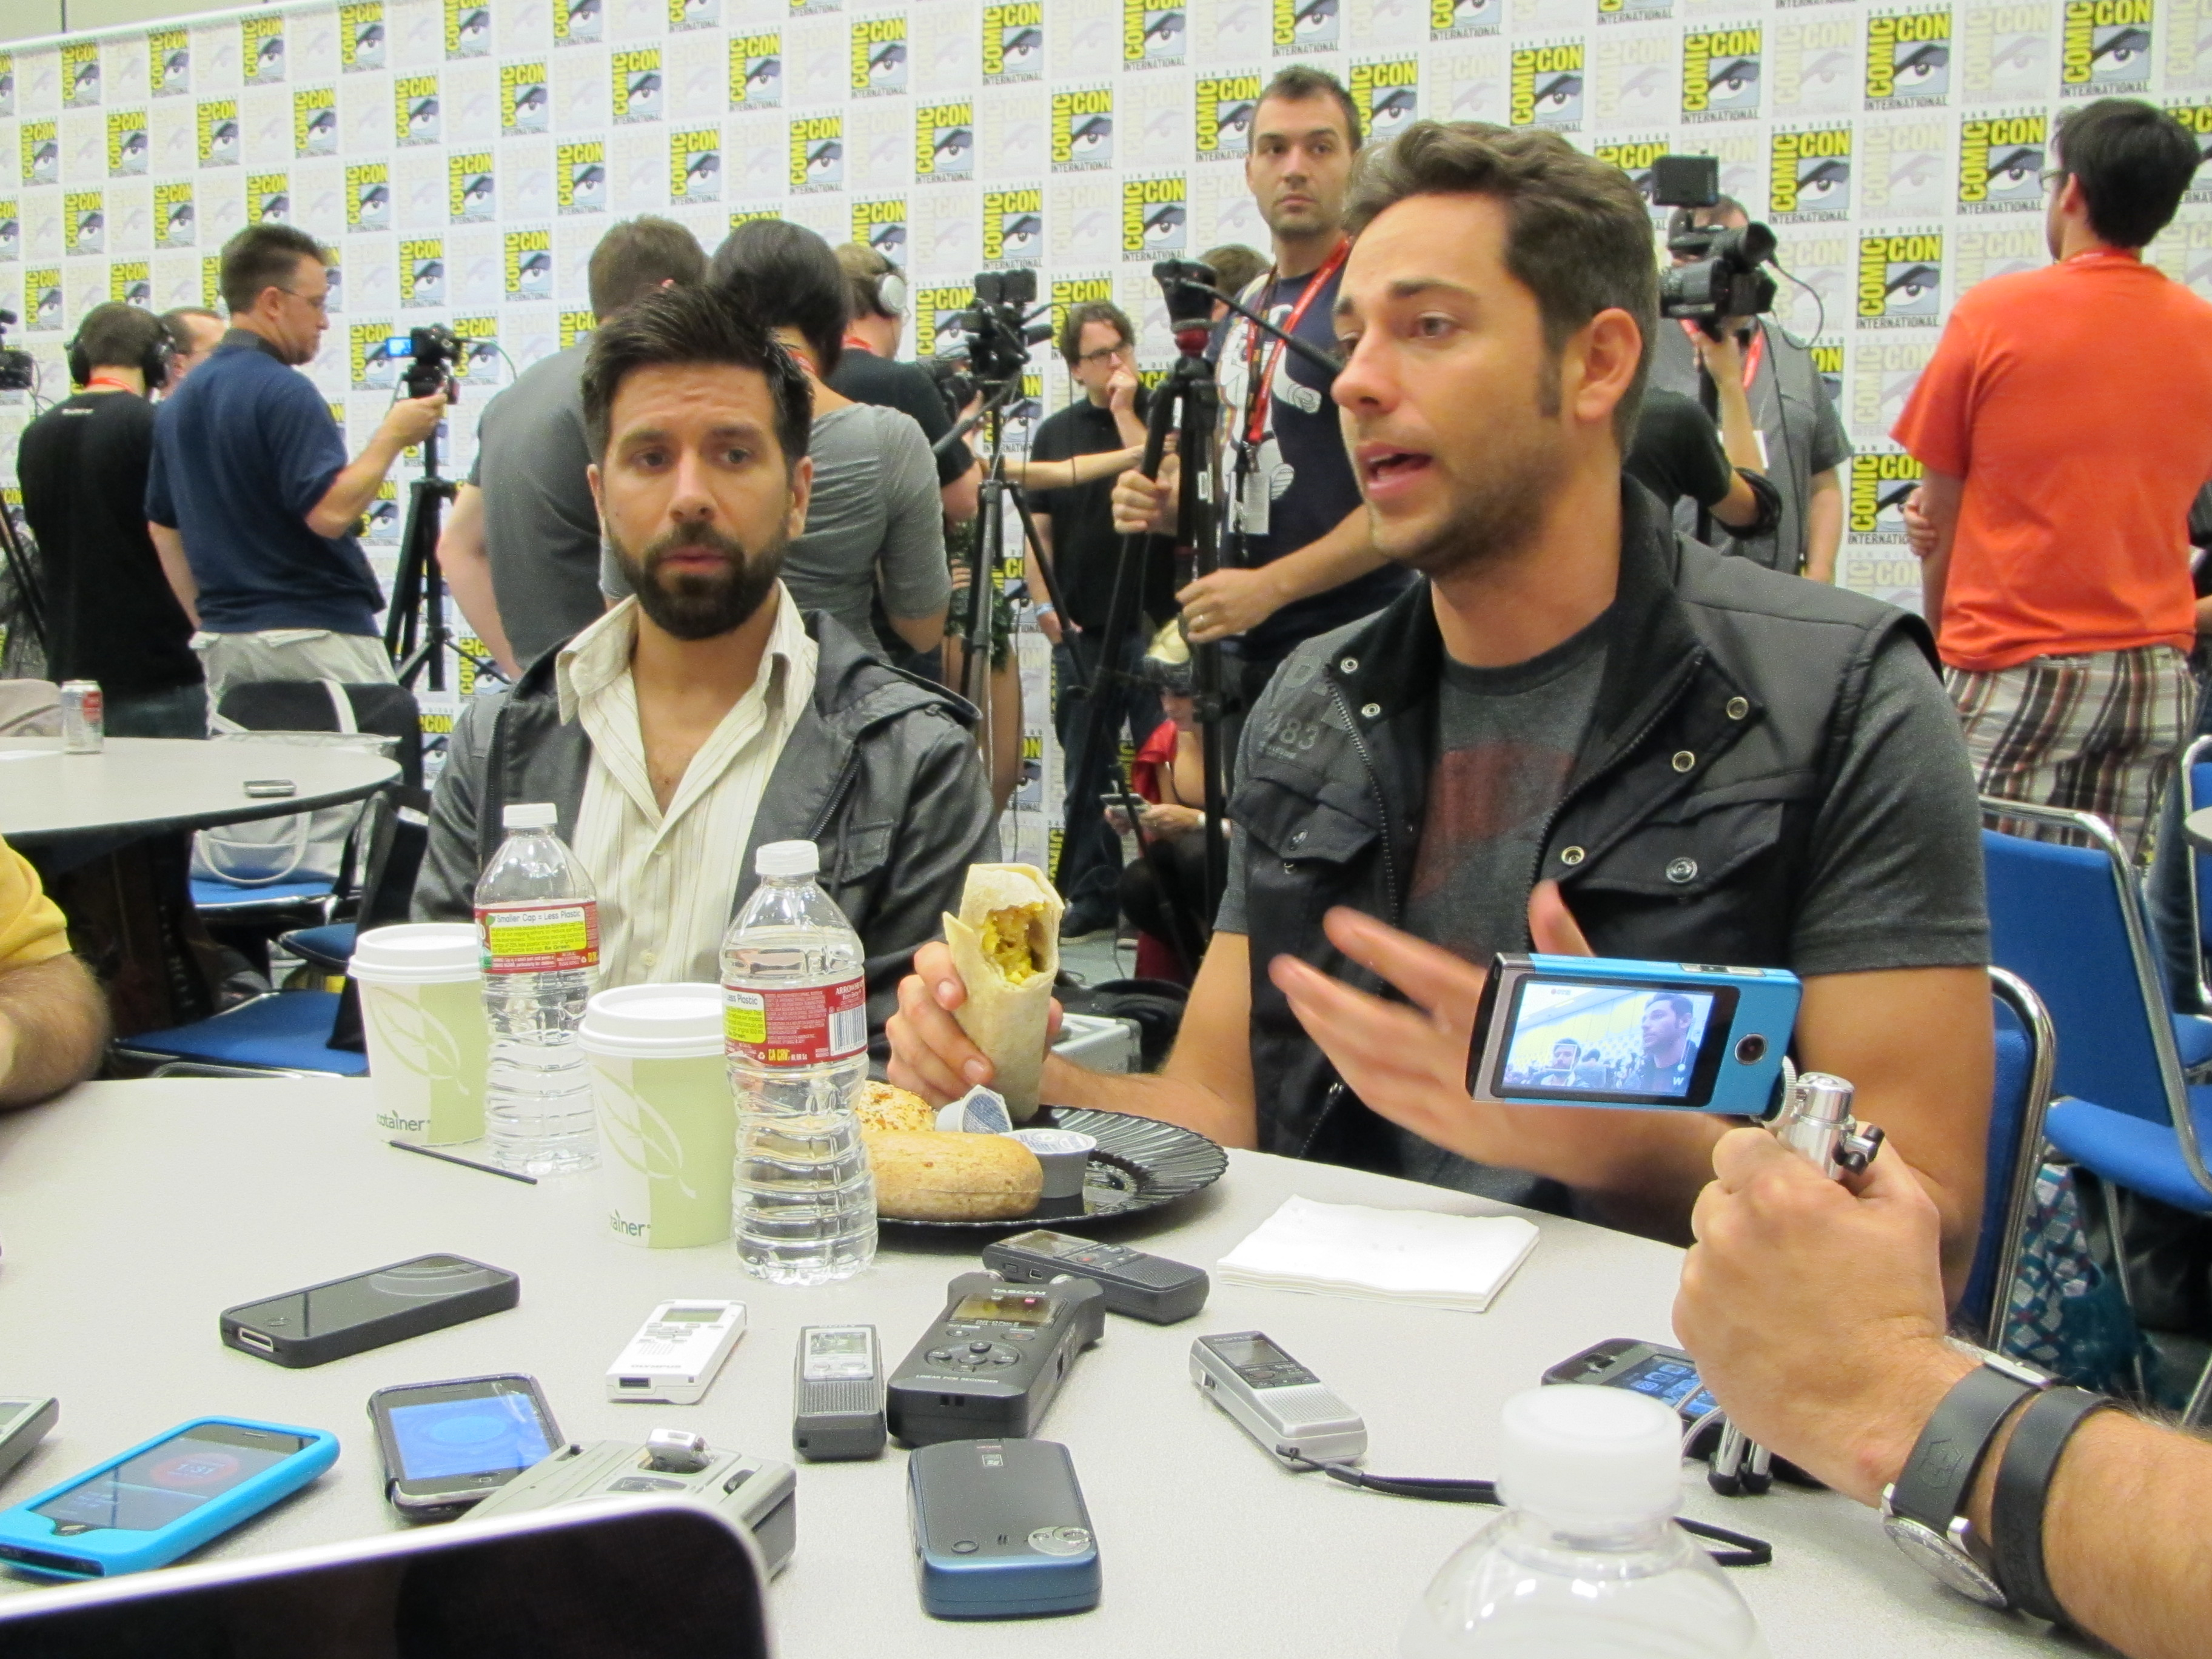 Chuck At Comic Con 2011 Interview With Zachary Levi And Joshua Gomez Tune in and don't miss the movie in theaters tomorrow! chuck at comic con 2011 interview with zachary levi and joshua gomez